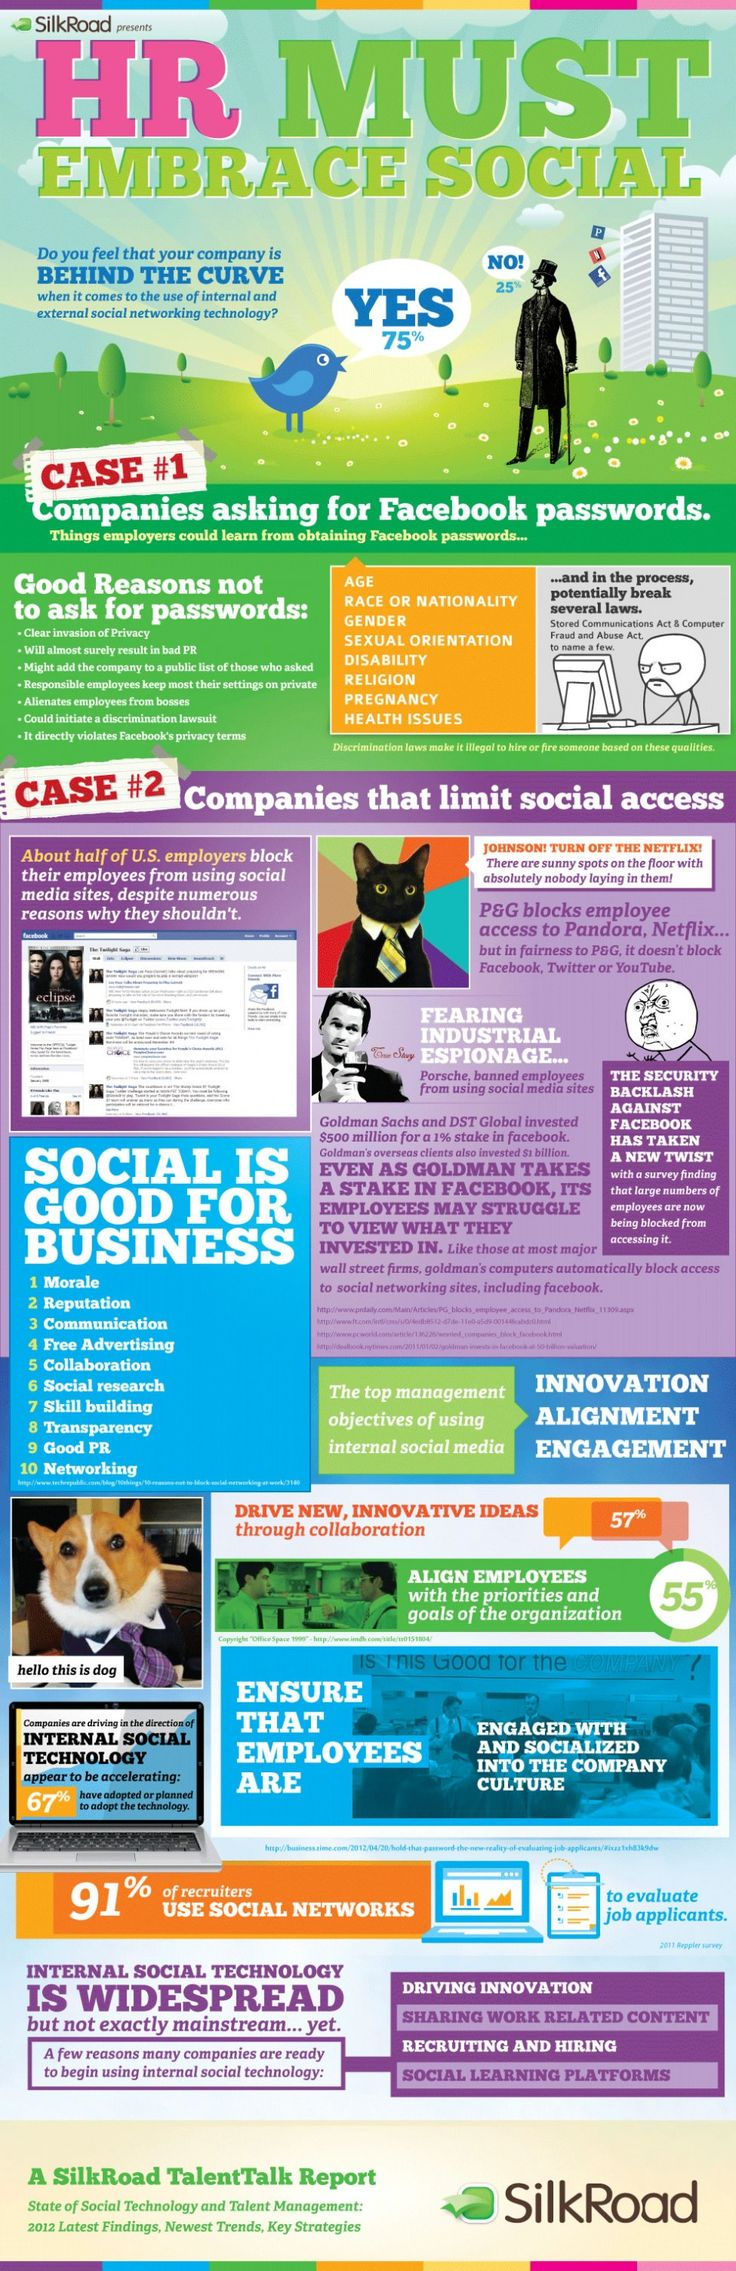 Human resource management functions applications amp skill development - Why Hr Must Embrace Social Media